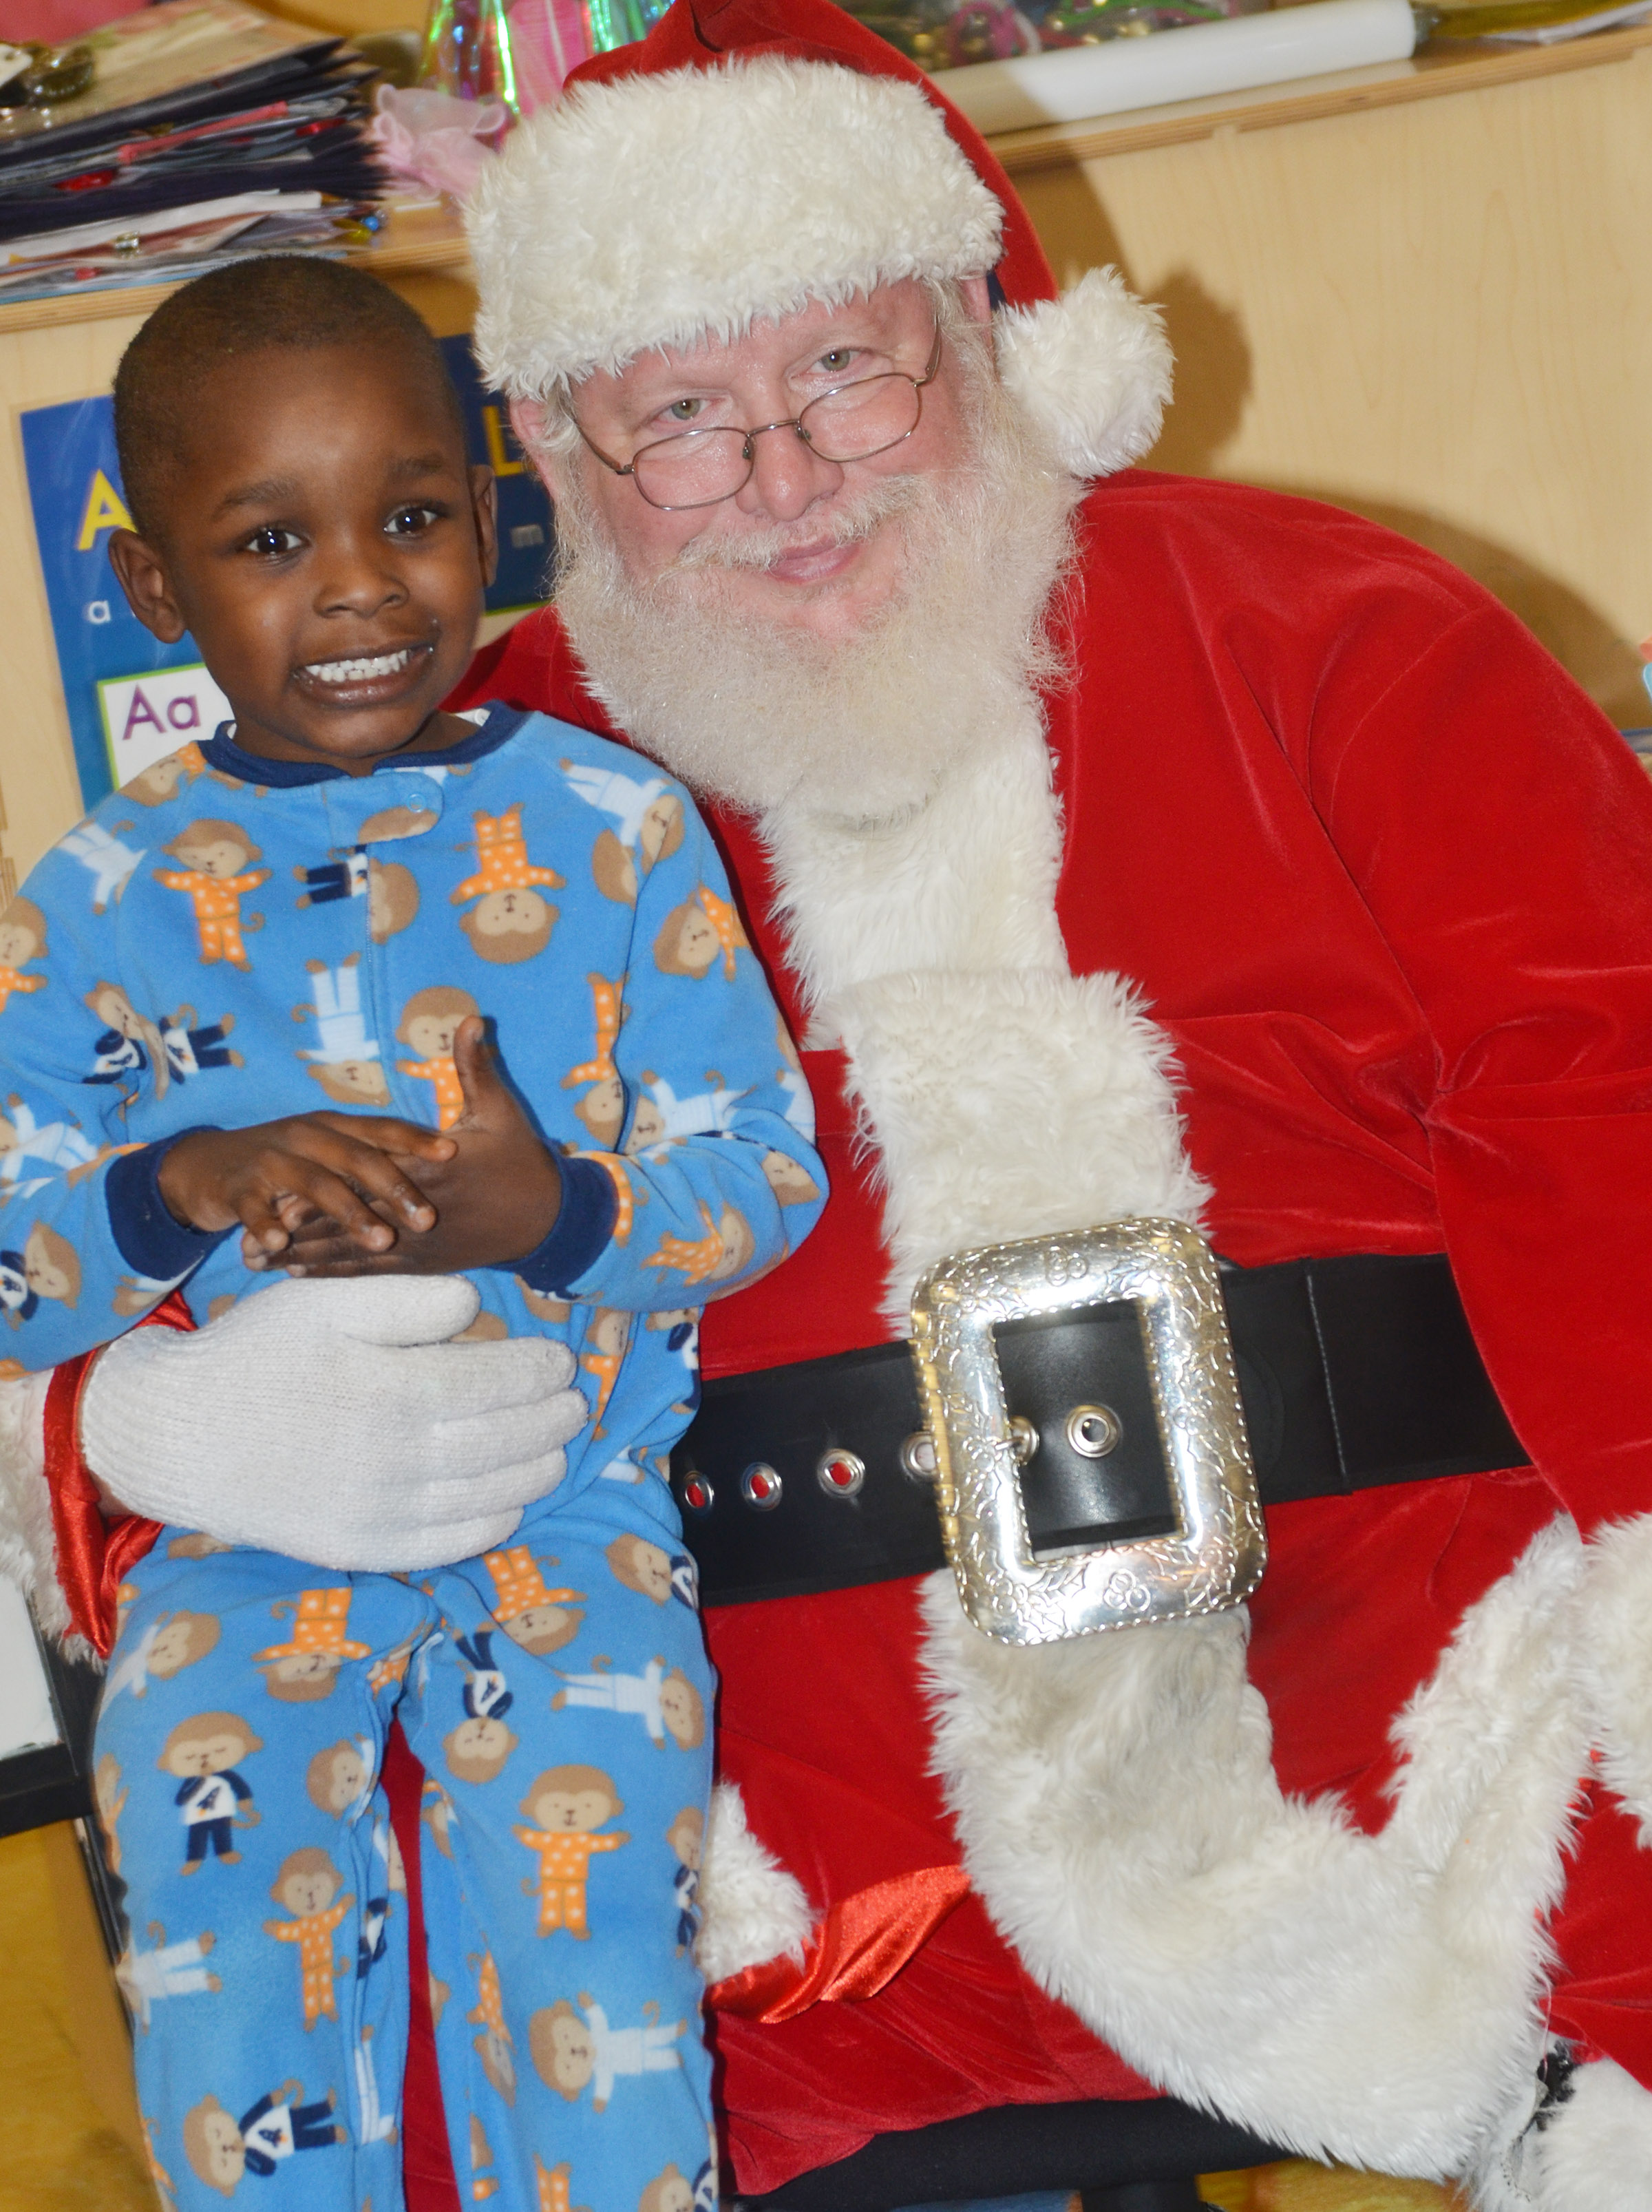 CES preschool student Xavien Smith smiles for a photo with Santa.